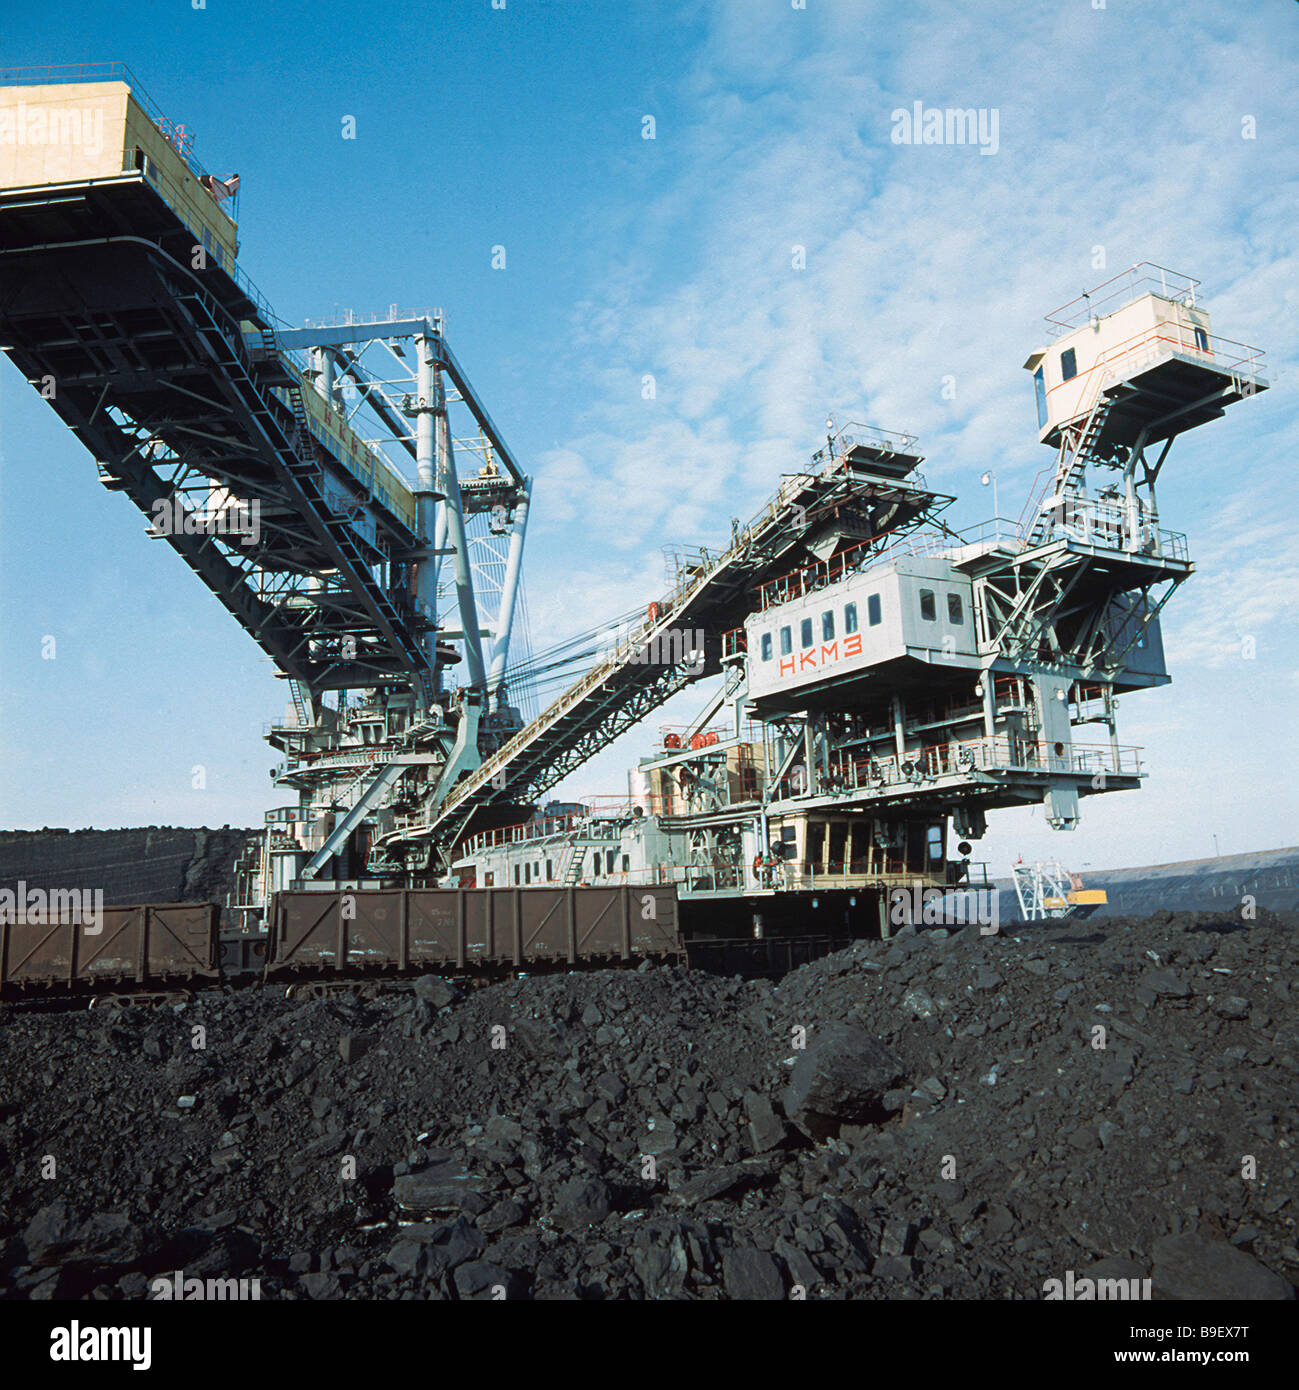 Rotor excavator with a capacity of 5 000 tons of coal per hour manufactured at the Novokramatorsk engineering works - Stock Image